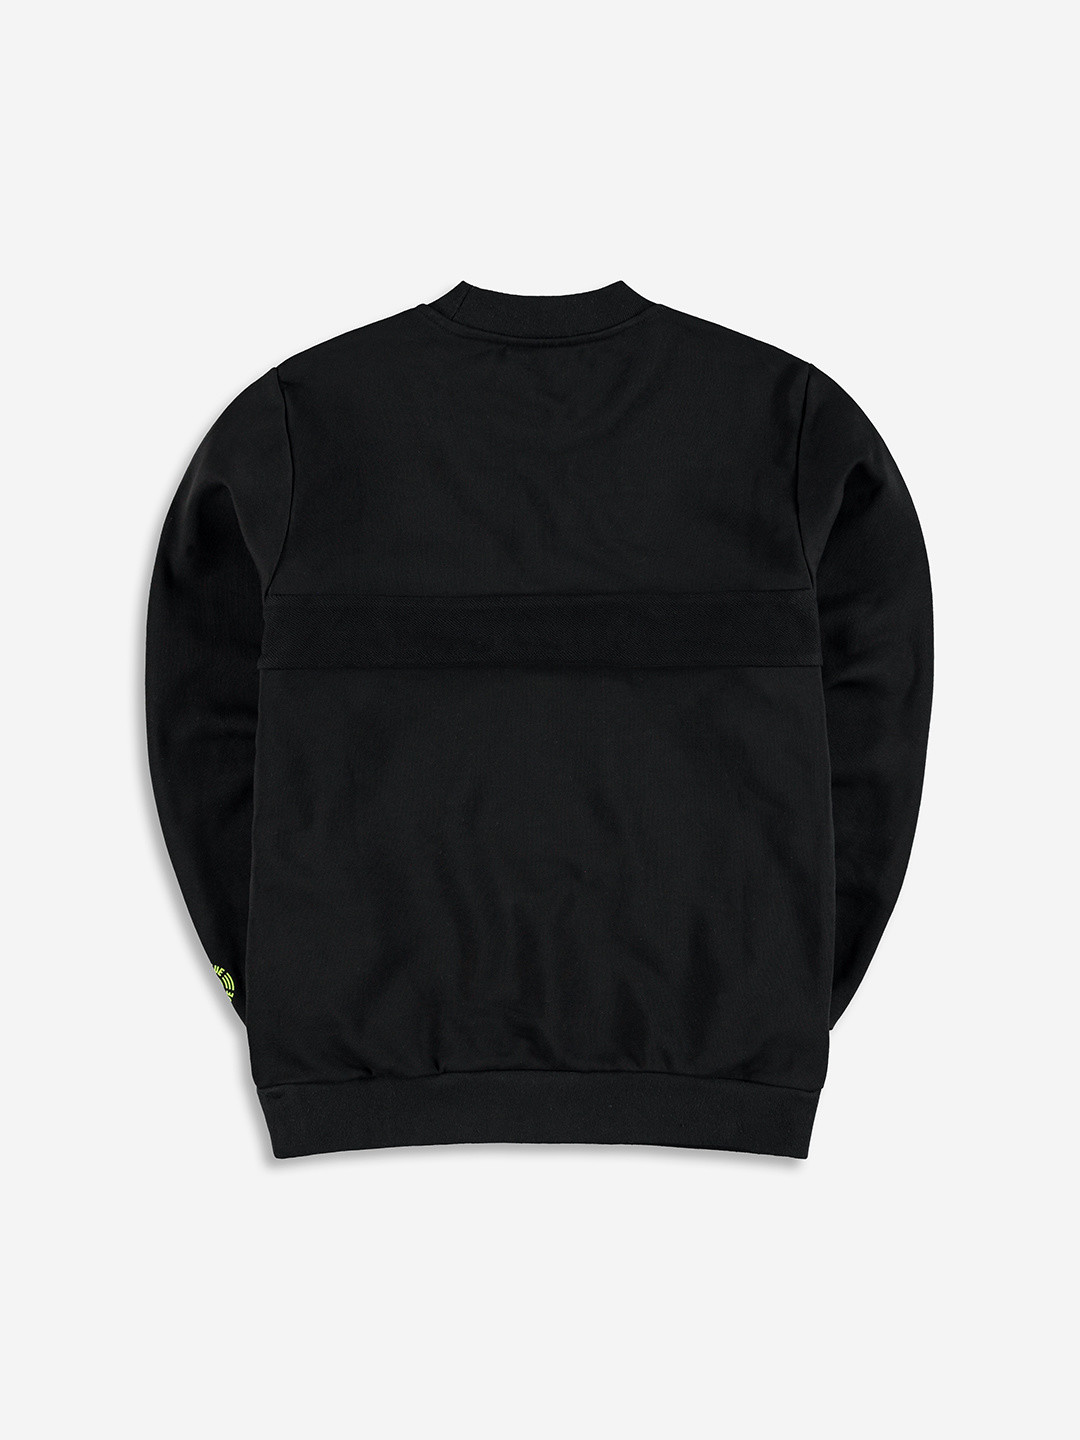 SPLIT FABRIC SWEATER BLACK